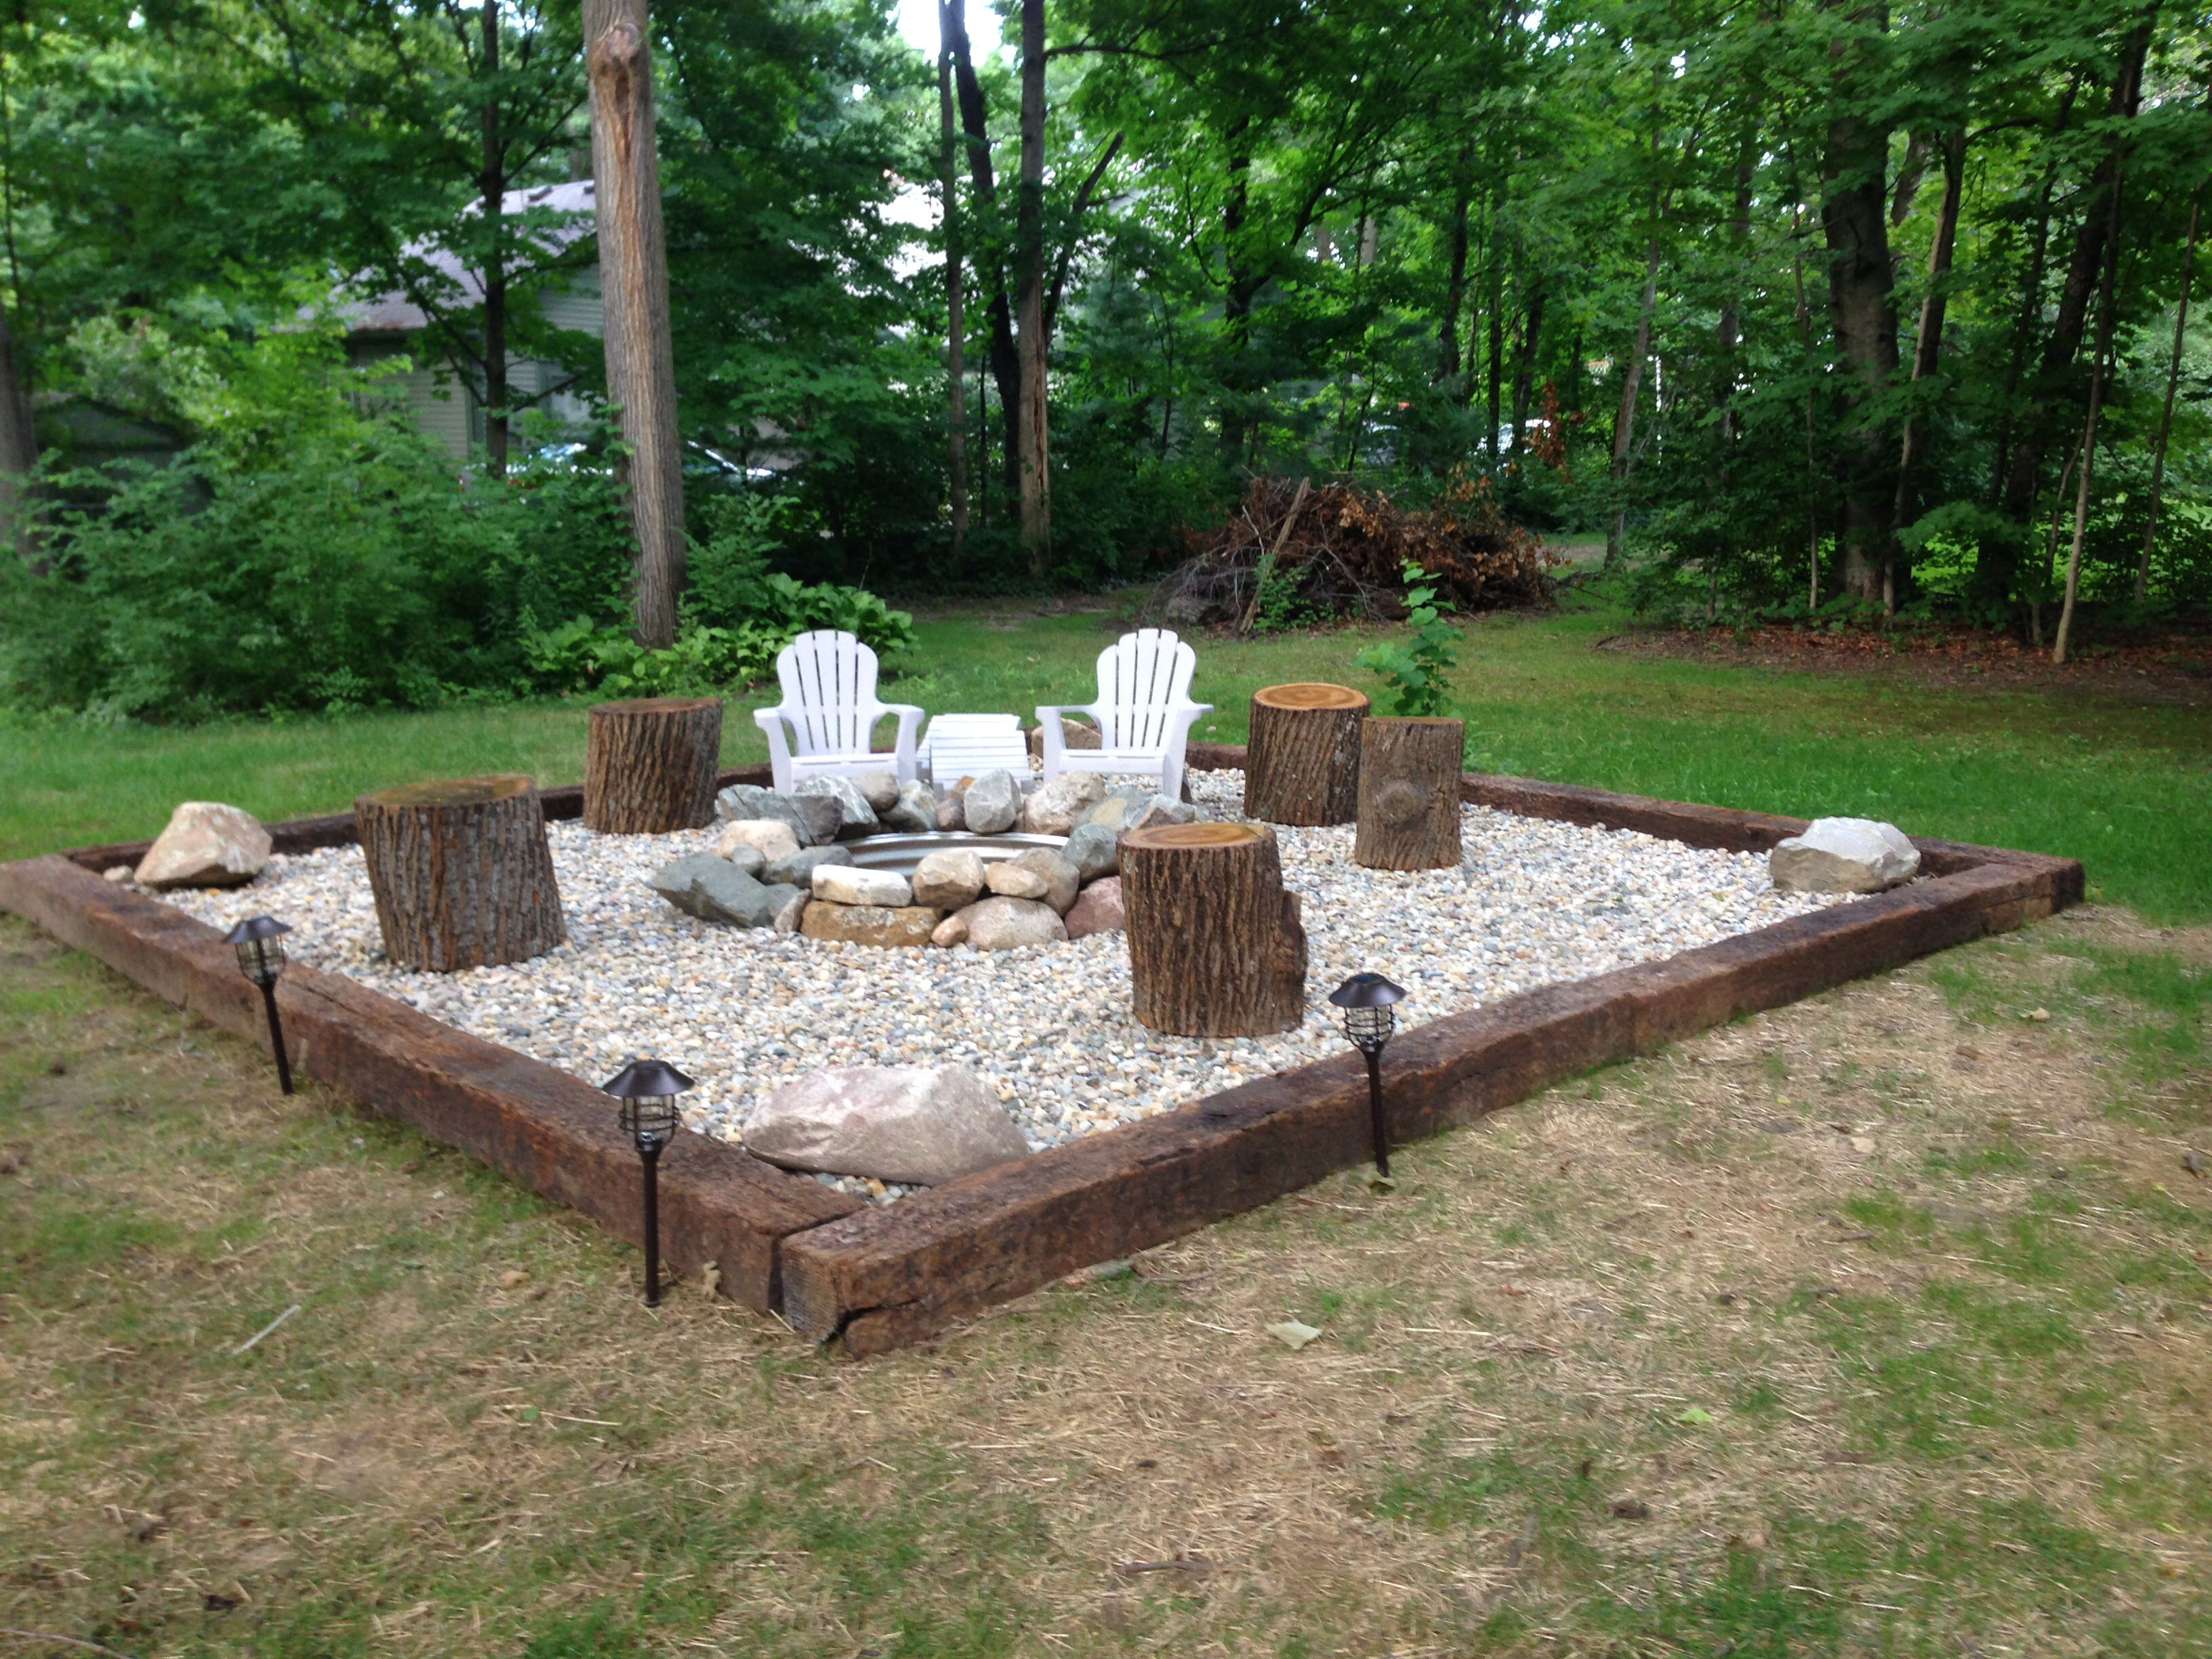 Inspiration for backyard fire pit designs fire pit area for Patio ideas with fire pit on a budget